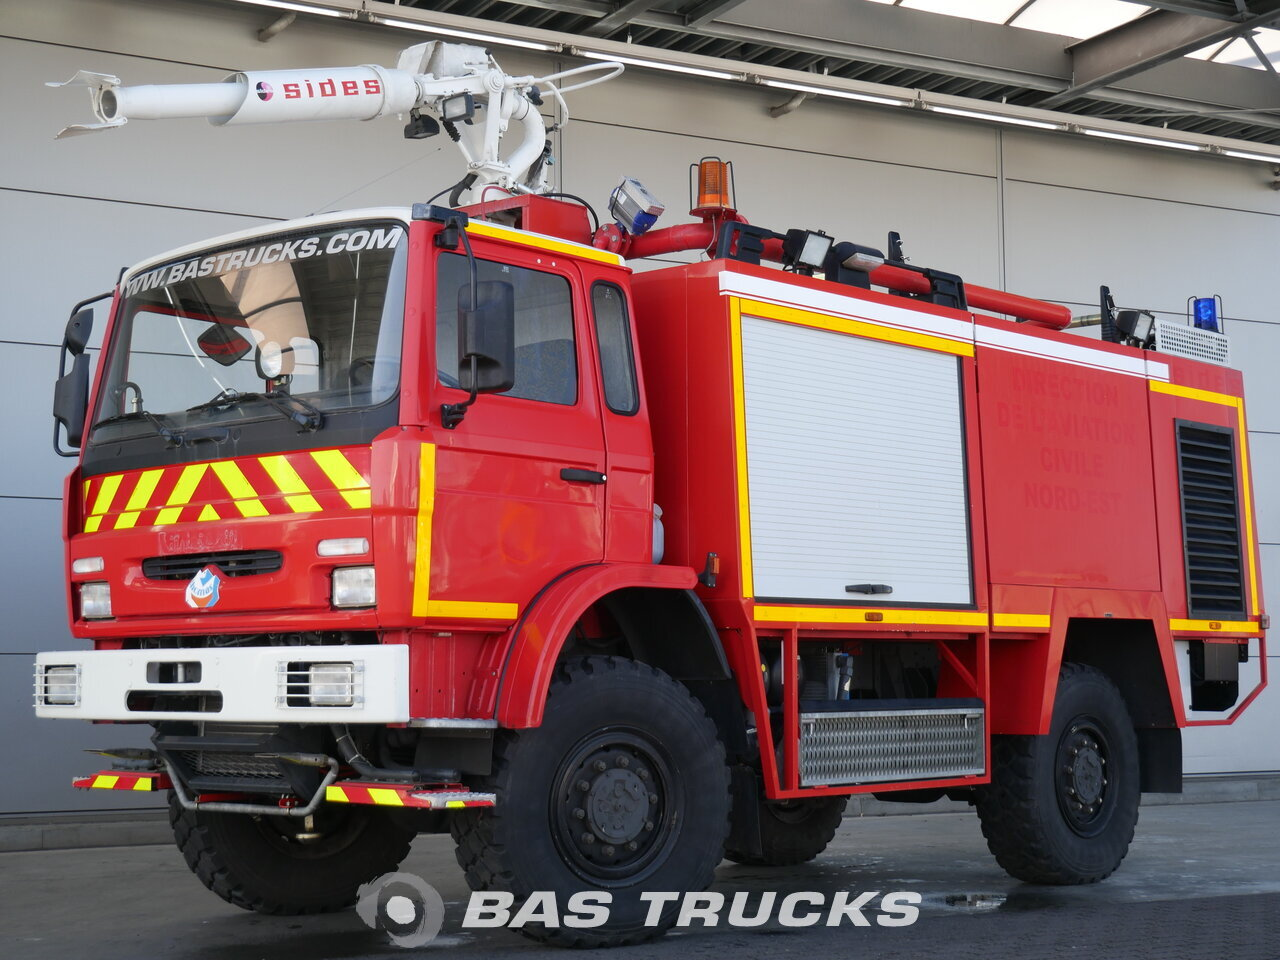 Used Fire Trucks For Sale >> For Sale At Bas Trucks Renault Fire Truck Sides Vim 24 4x4 04 2001